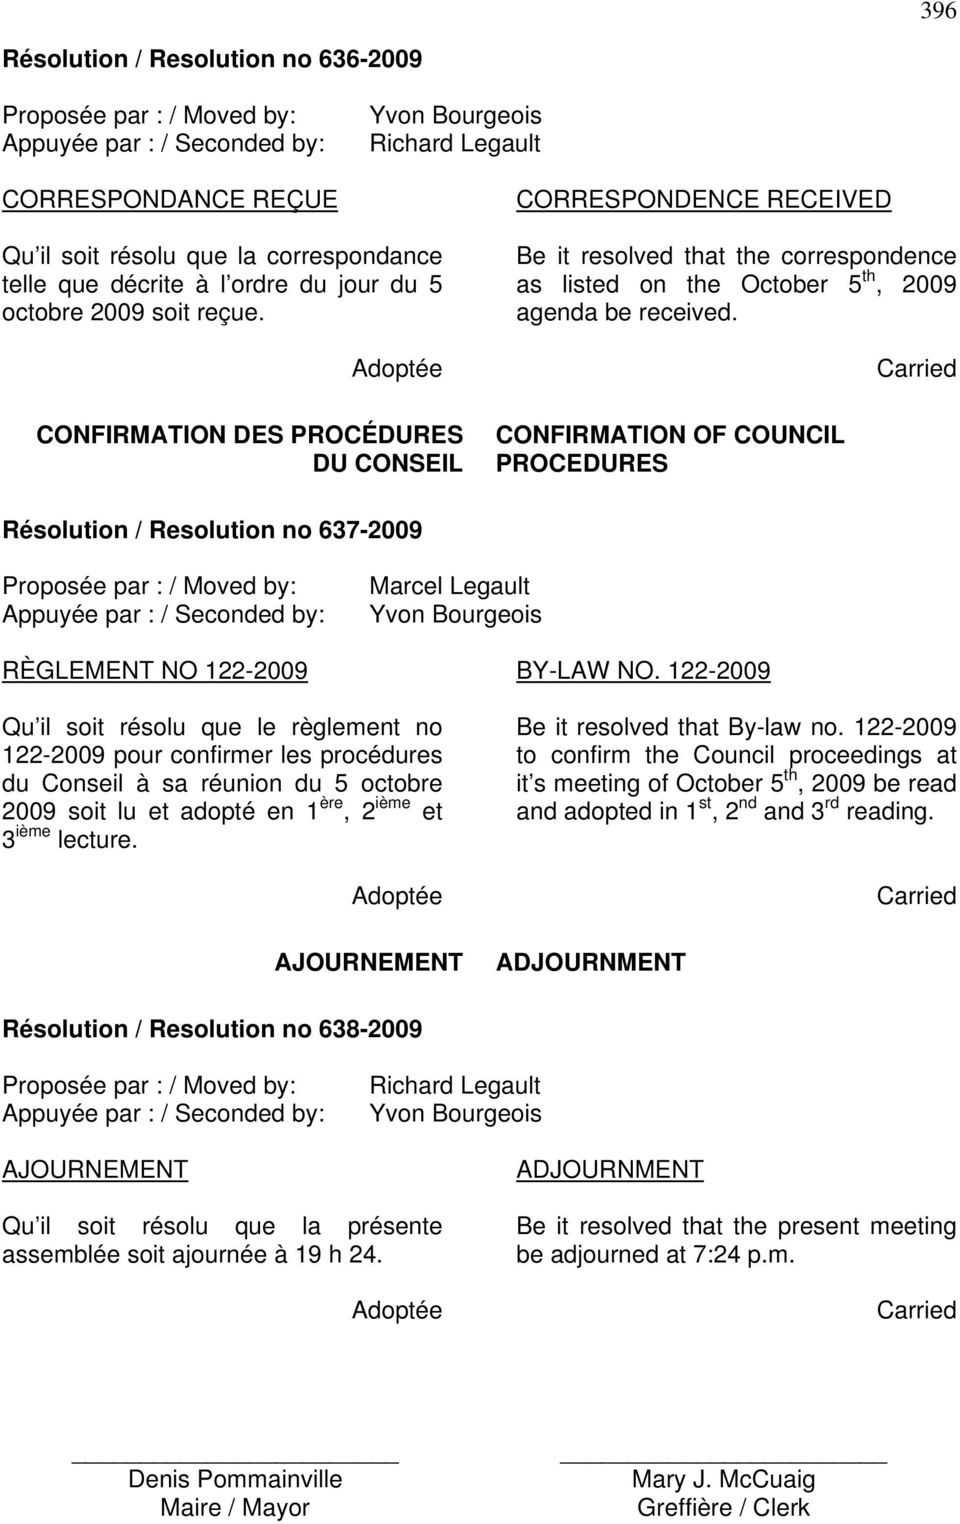 CONFIRMATION OF COUNCIL PROCEDURES Résolution / Resolution no 637-2009 RÈGLEMENT NO 122-2009 BY-LAW NO.